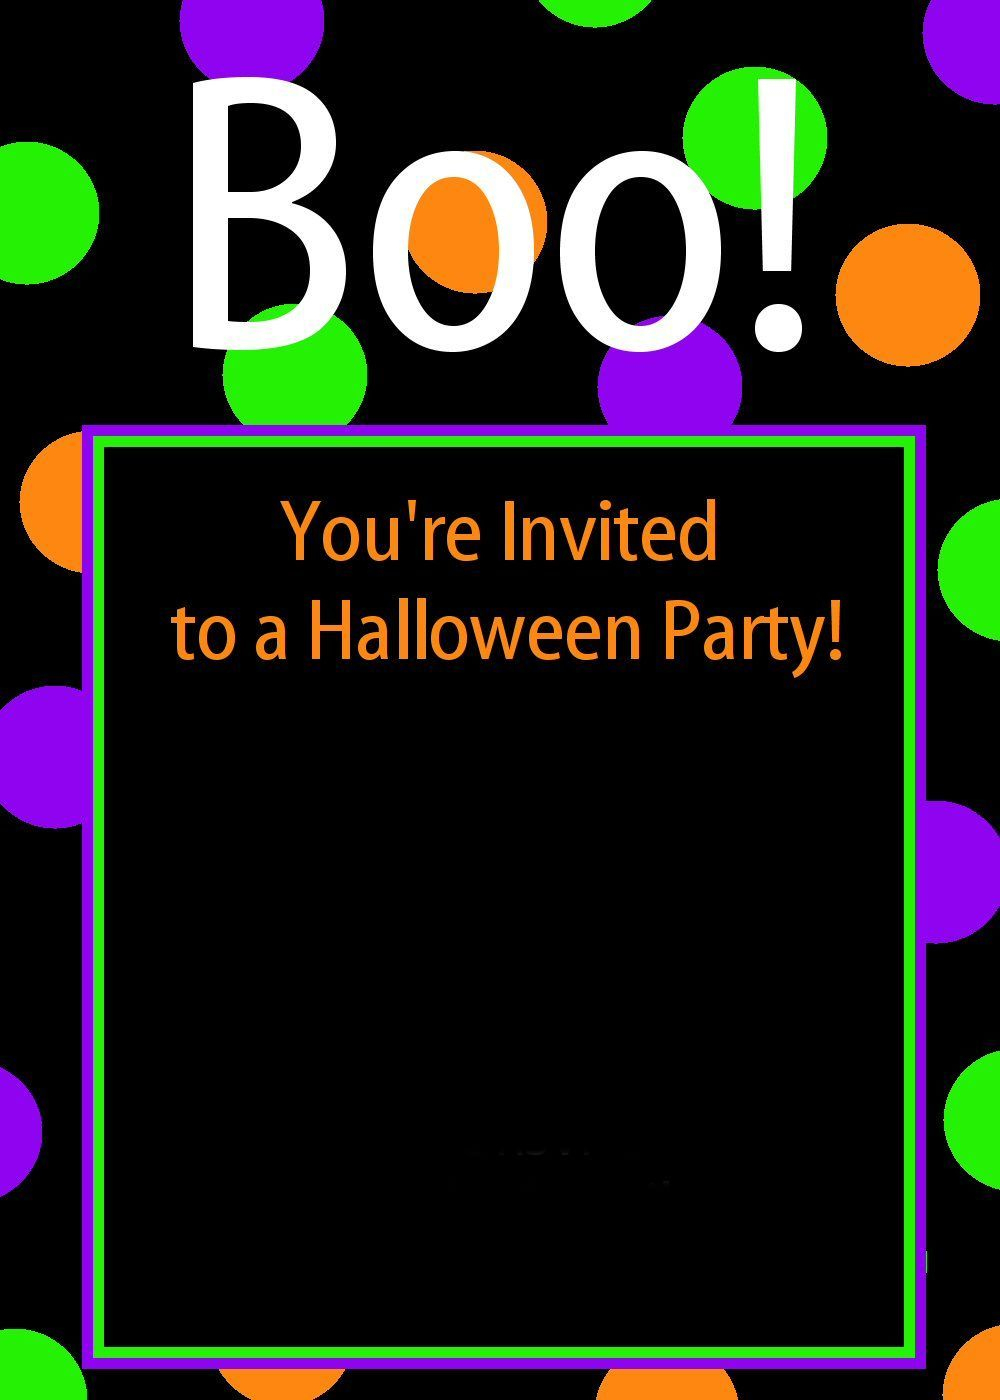 Cute Free Printable Halloween Invitations | Celebrate: Halloween - Free Printable Halloween Birthday Party Invitations